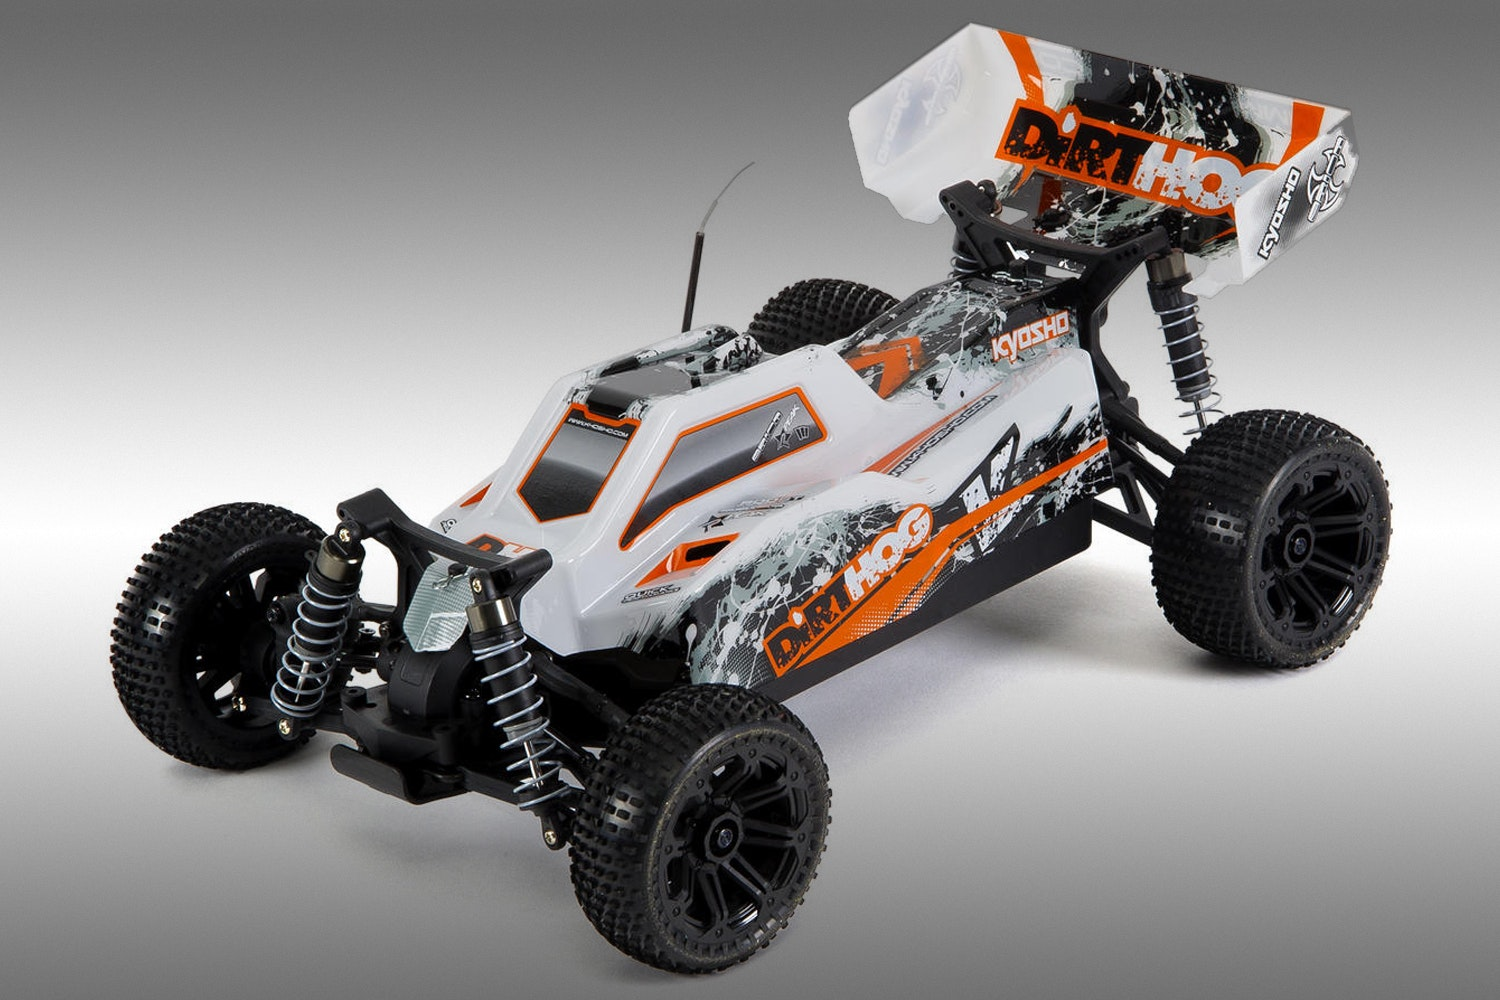 Kyosho Dirt Hog Type 2 4WD Racing Buggy RTR